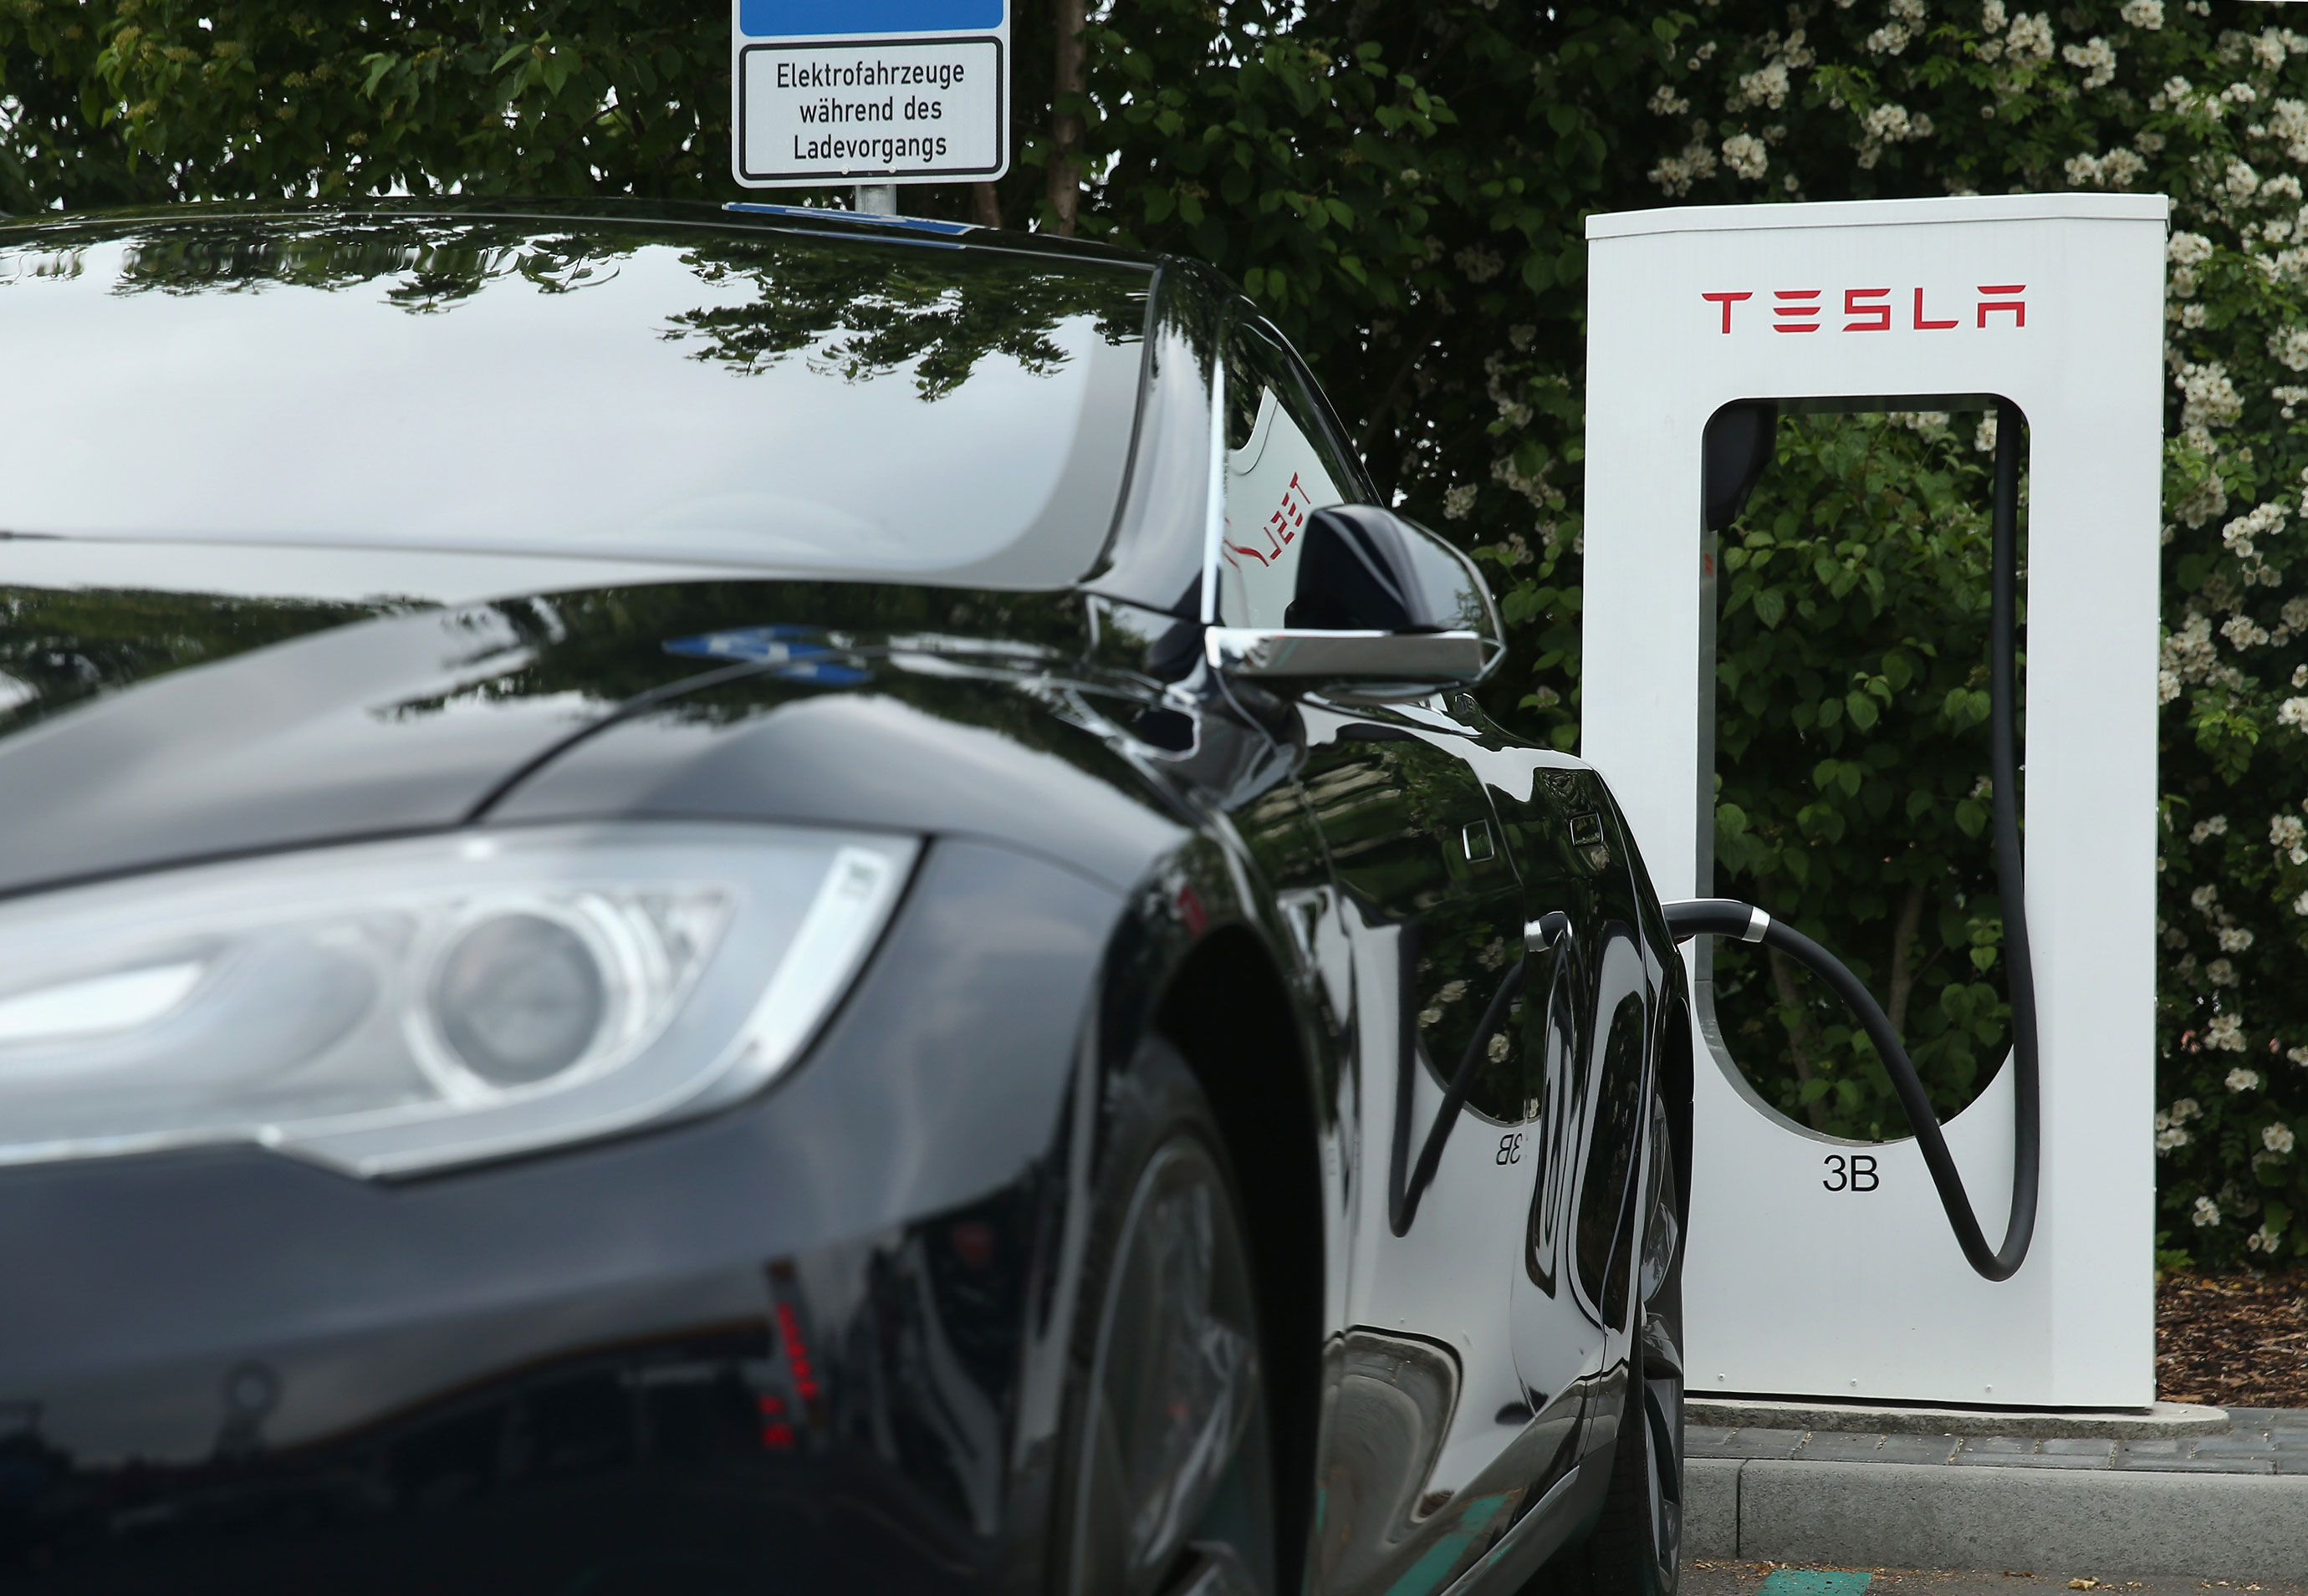 Tesla S Cheaper Model Could Strain Charging Infrastructure Mit